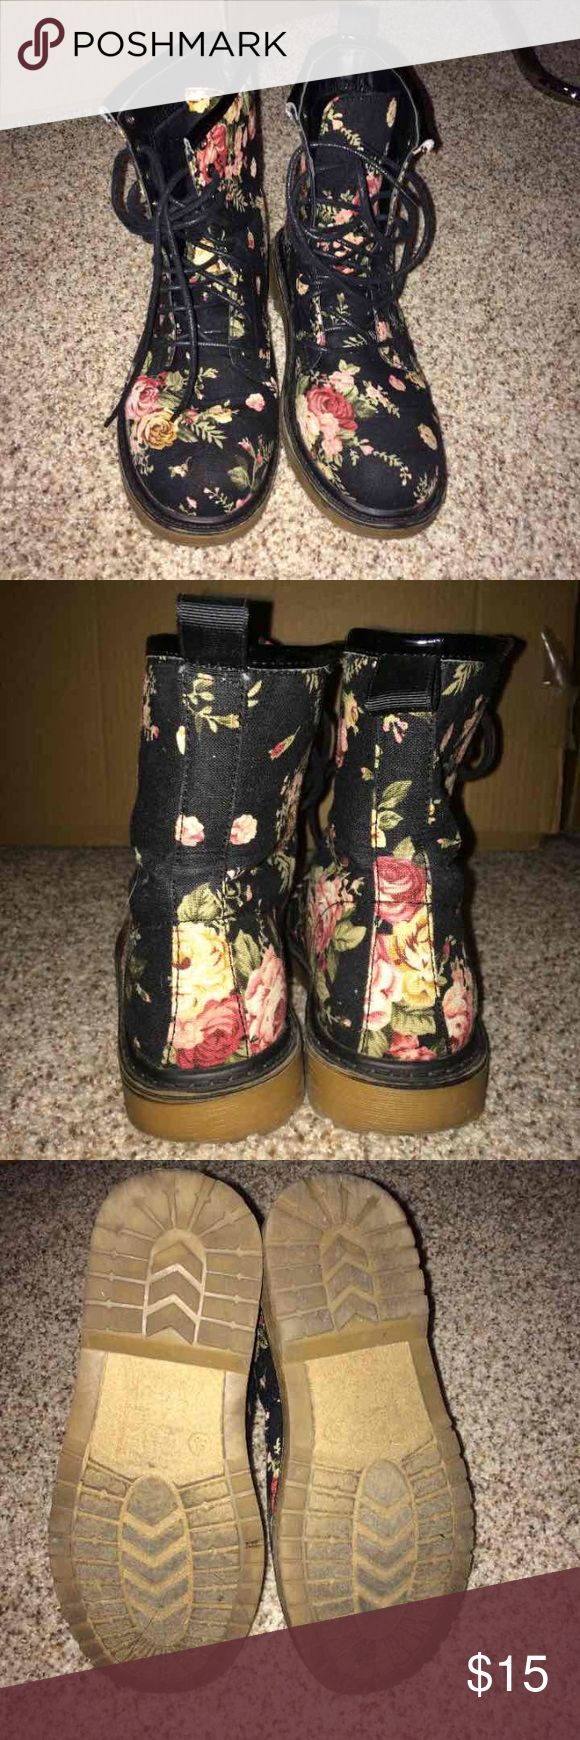 Floral combat boots Super cute. Bought from windsor. Size 5.5 but can fit a 6 because they fit big. No flaws worn 4-5 times. Charlotte Russe Shoes Combat & Moto Boots